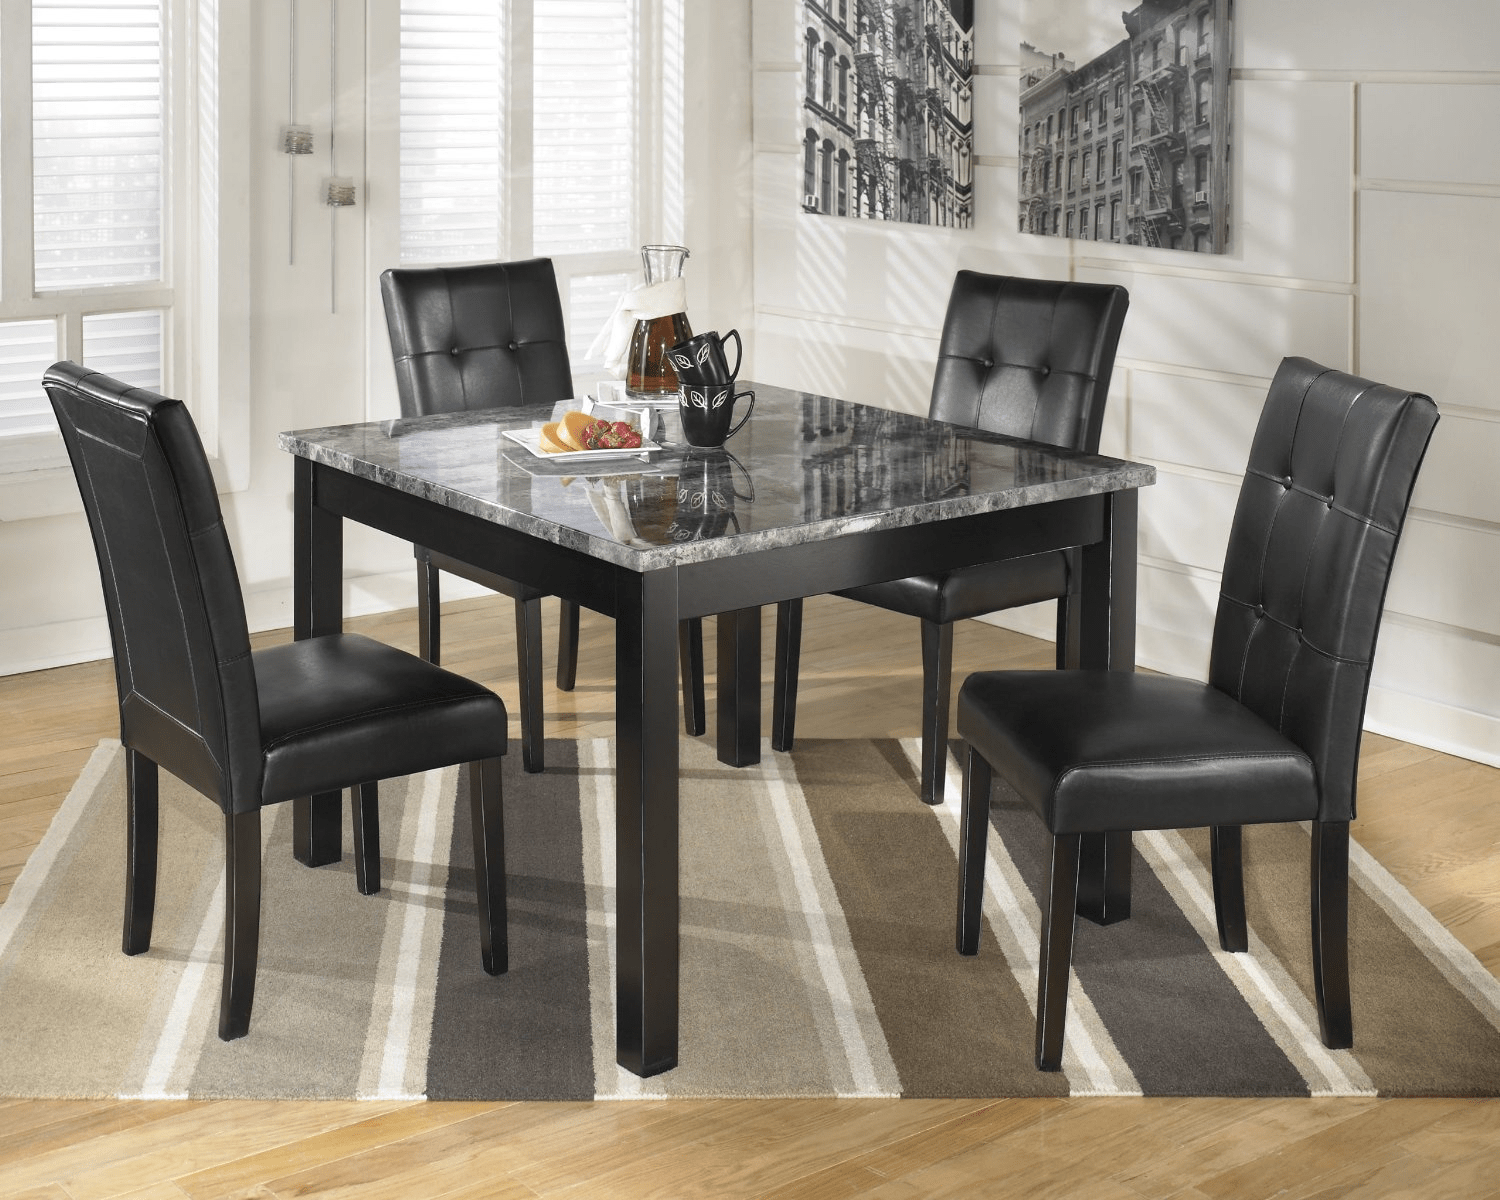 Delicieux Black Faux Marble Top Dining Table